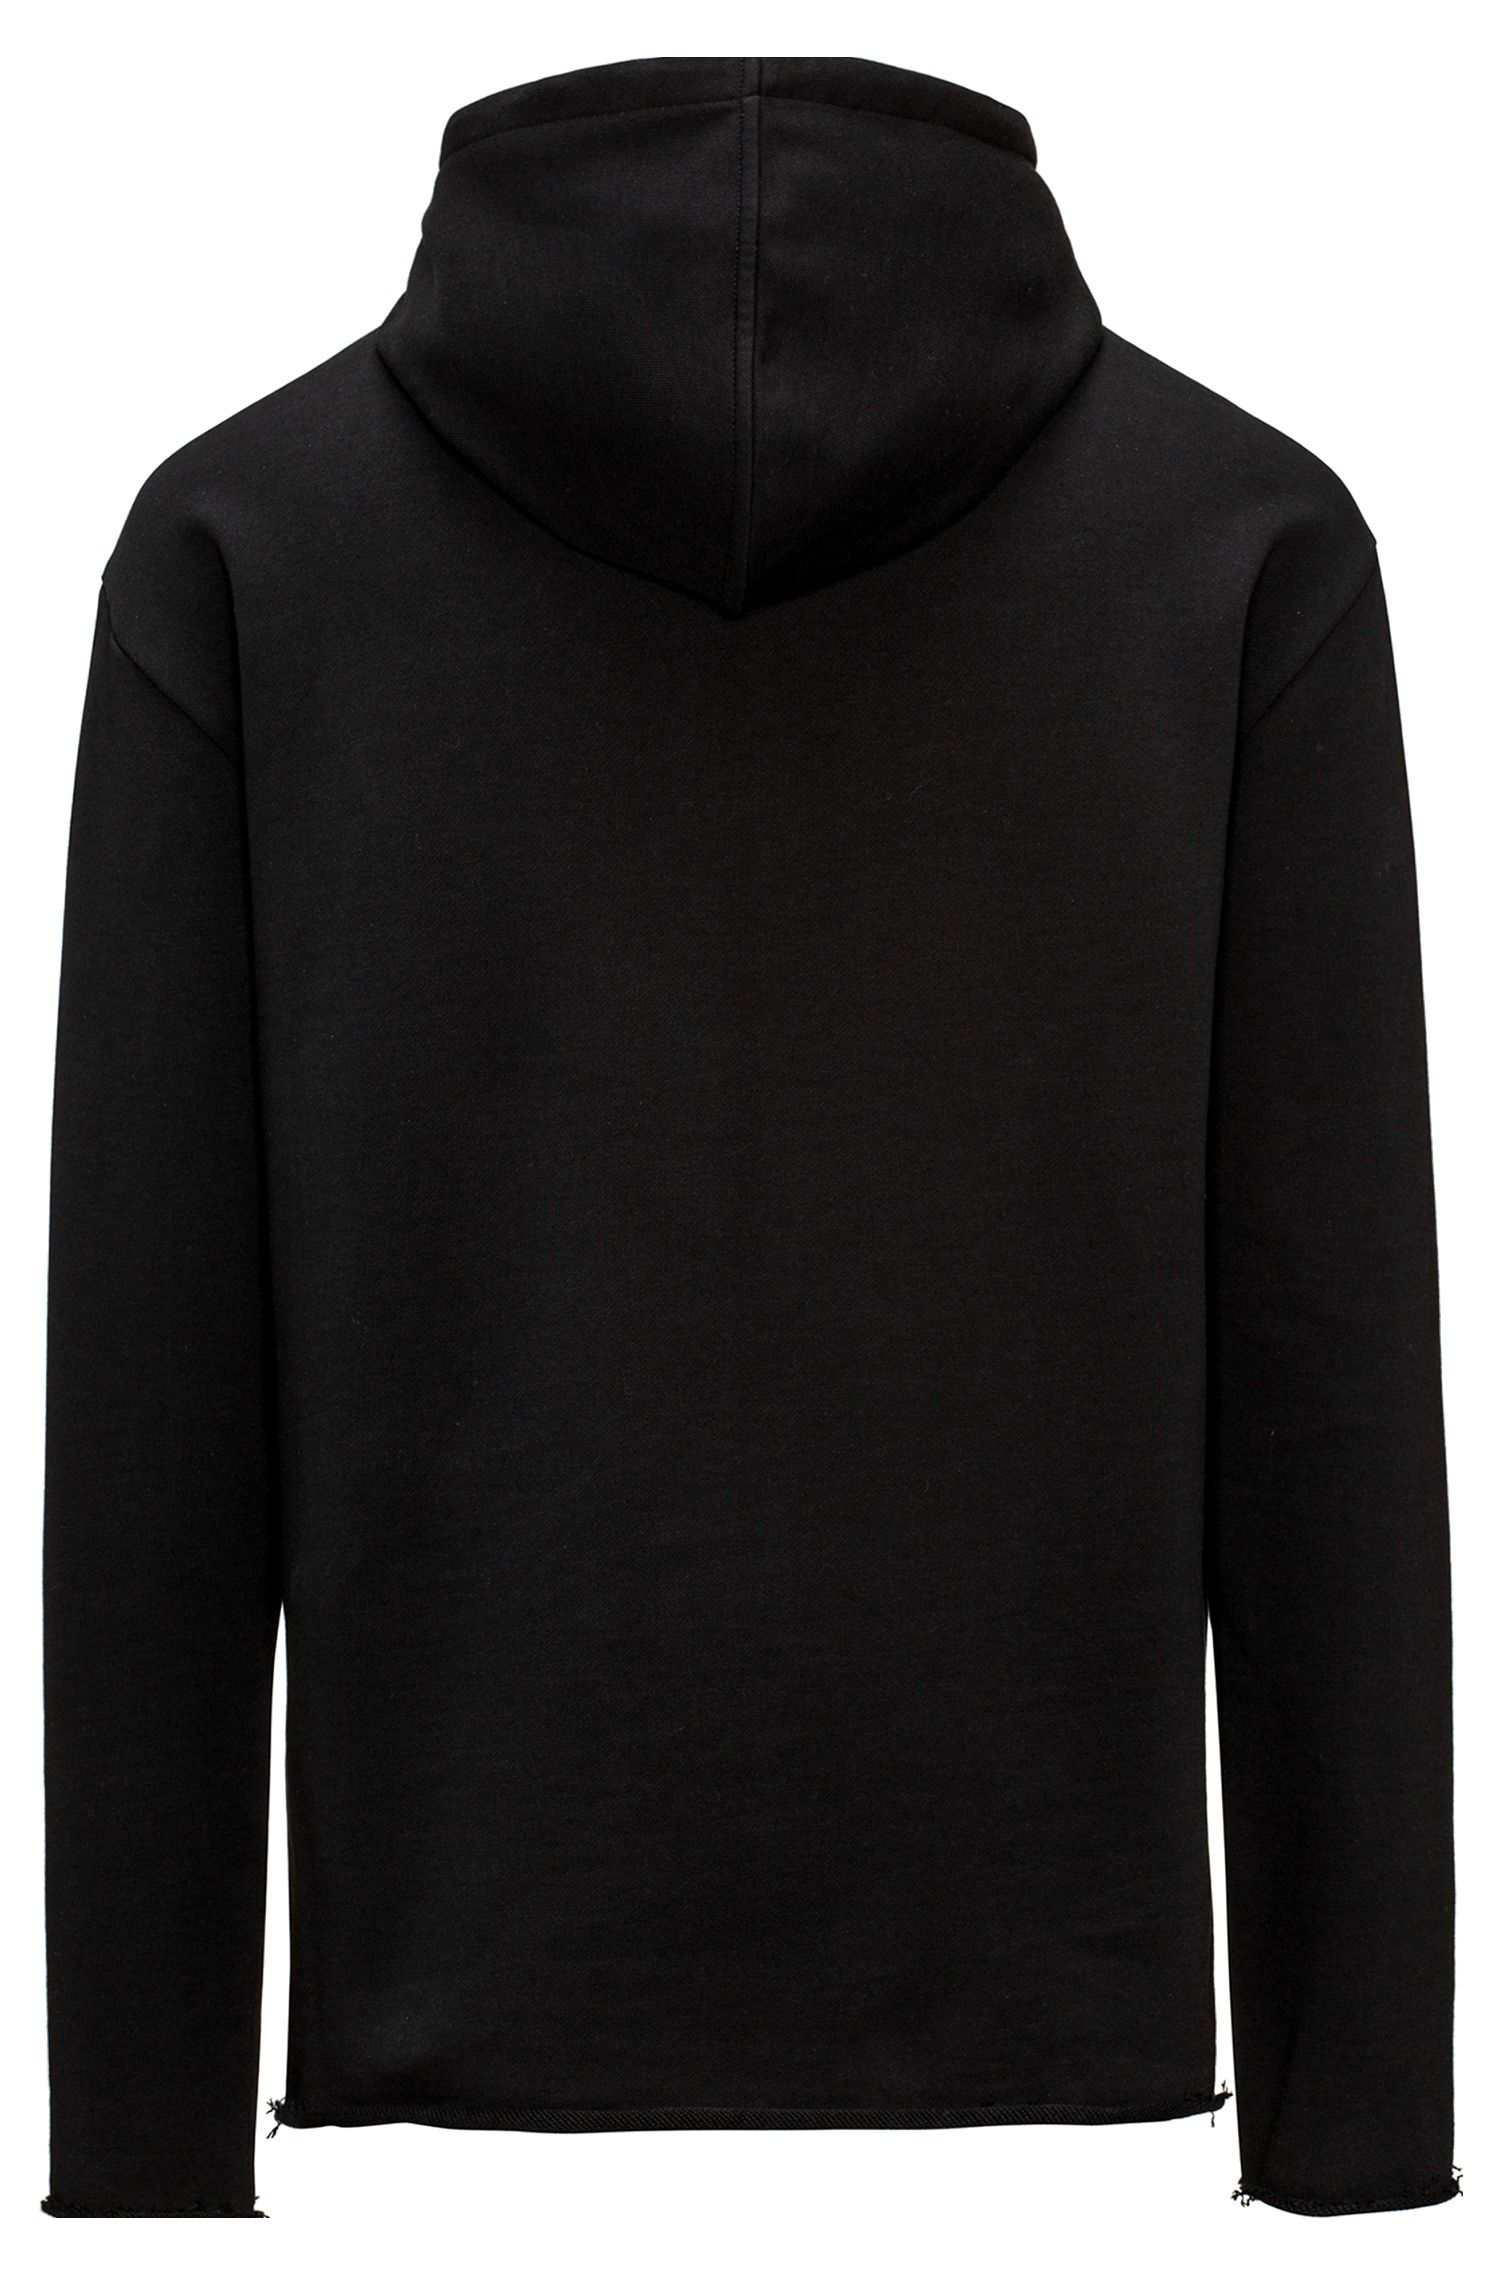 Cotton Half-Zip Hooded Sweatshirt | Dolonel